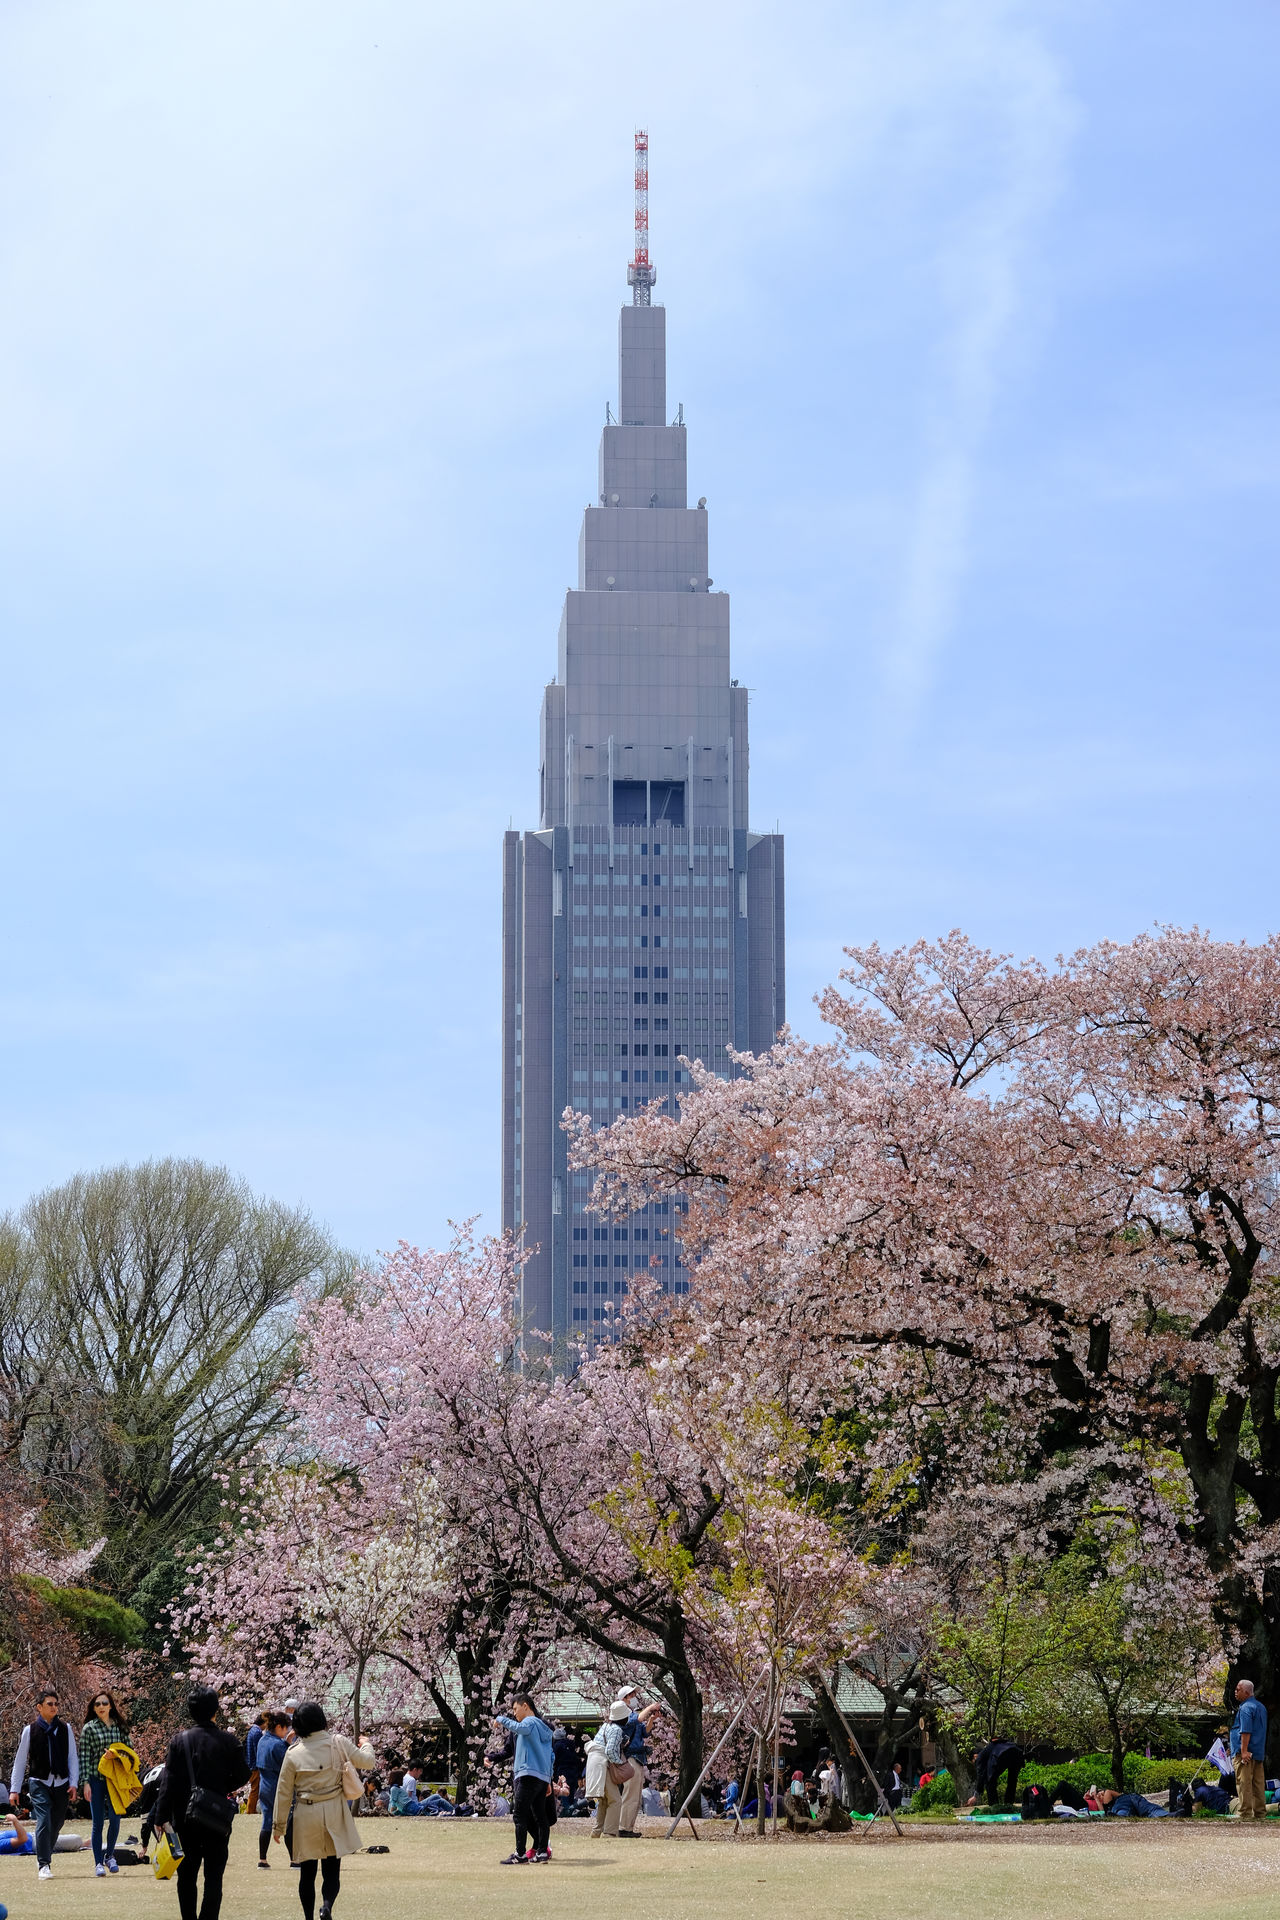 Architecture Building Exterior Built Structure Cherry Blossoms Cherry-blossom Viewing City City Life Famous Place Large Group Of People Lifestyles Men Modern Person Shinjuku Gyoen National Garden SHINJYUKU Sky Skyscraper Tall - High Tourism Tower Travel Travel Destinations Tree